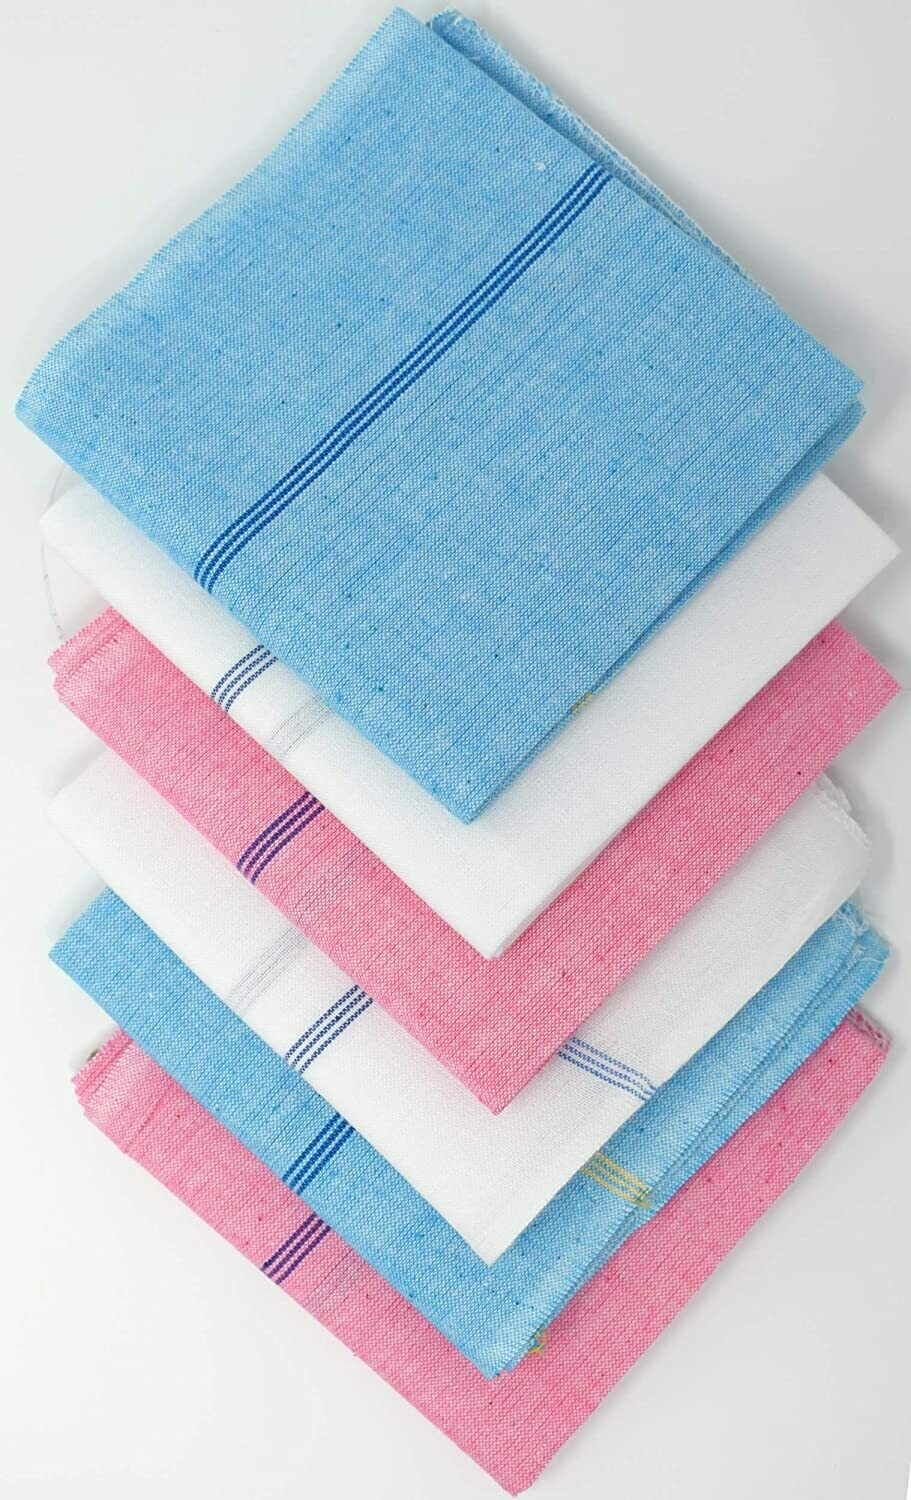 Cotton Handkerchiefs Hand-loom Handkerchiefs made with 100% Cotton - Superior Quality